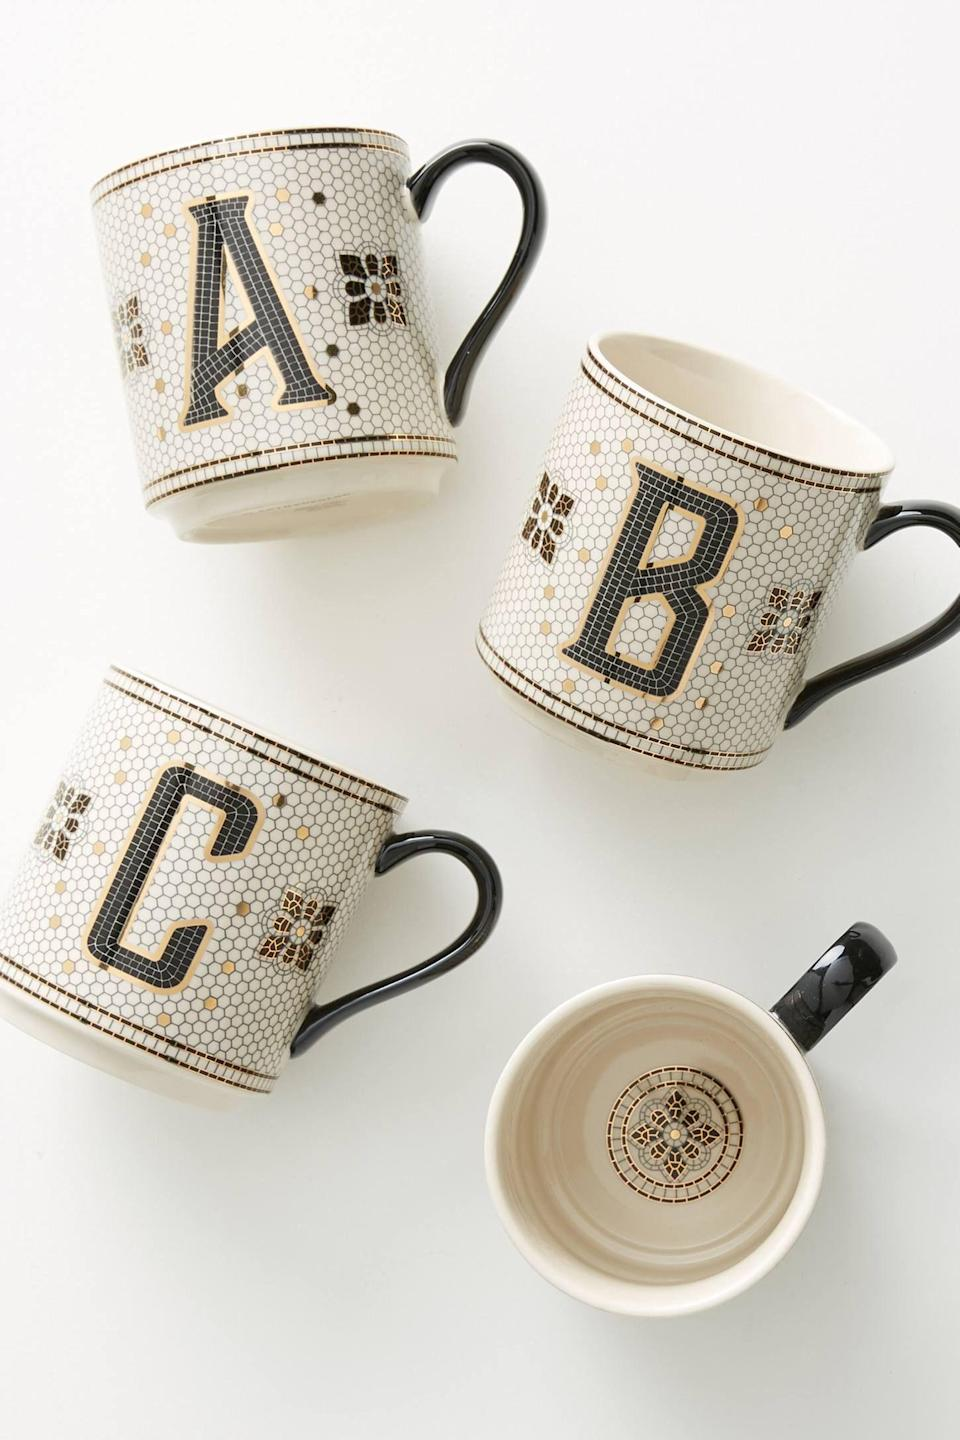 "<p><strong>Anthropologie</strong></p><p>anthropologie.com</p><p><strong>$14.00</strong></p><p><a href=""https://go.redirectingat.com?id=74968X1596630&url=https%3A%2F%2Fwww.anthropologie.com%2Fshop%2Ftiled-margot-monogram-mug%3Fcolor%3D901%26type%3DSTANDARD%26quantity%3D1&sref=https%3A%2F%2Fwww.townandcountrymag.com%2Fstyle%2Fg27168800%2Flast-minute-mothers-day-gifts%2F"" rel=""nofollow noopener"" target=""_blank"" data-ylk=""slk:Shop Now"" class=""link rapid-noclick-resp"">Shop Now</a></p><p>Dad will never steal her mug again thanks to this pretty, monogramed tile pattern. </p>"